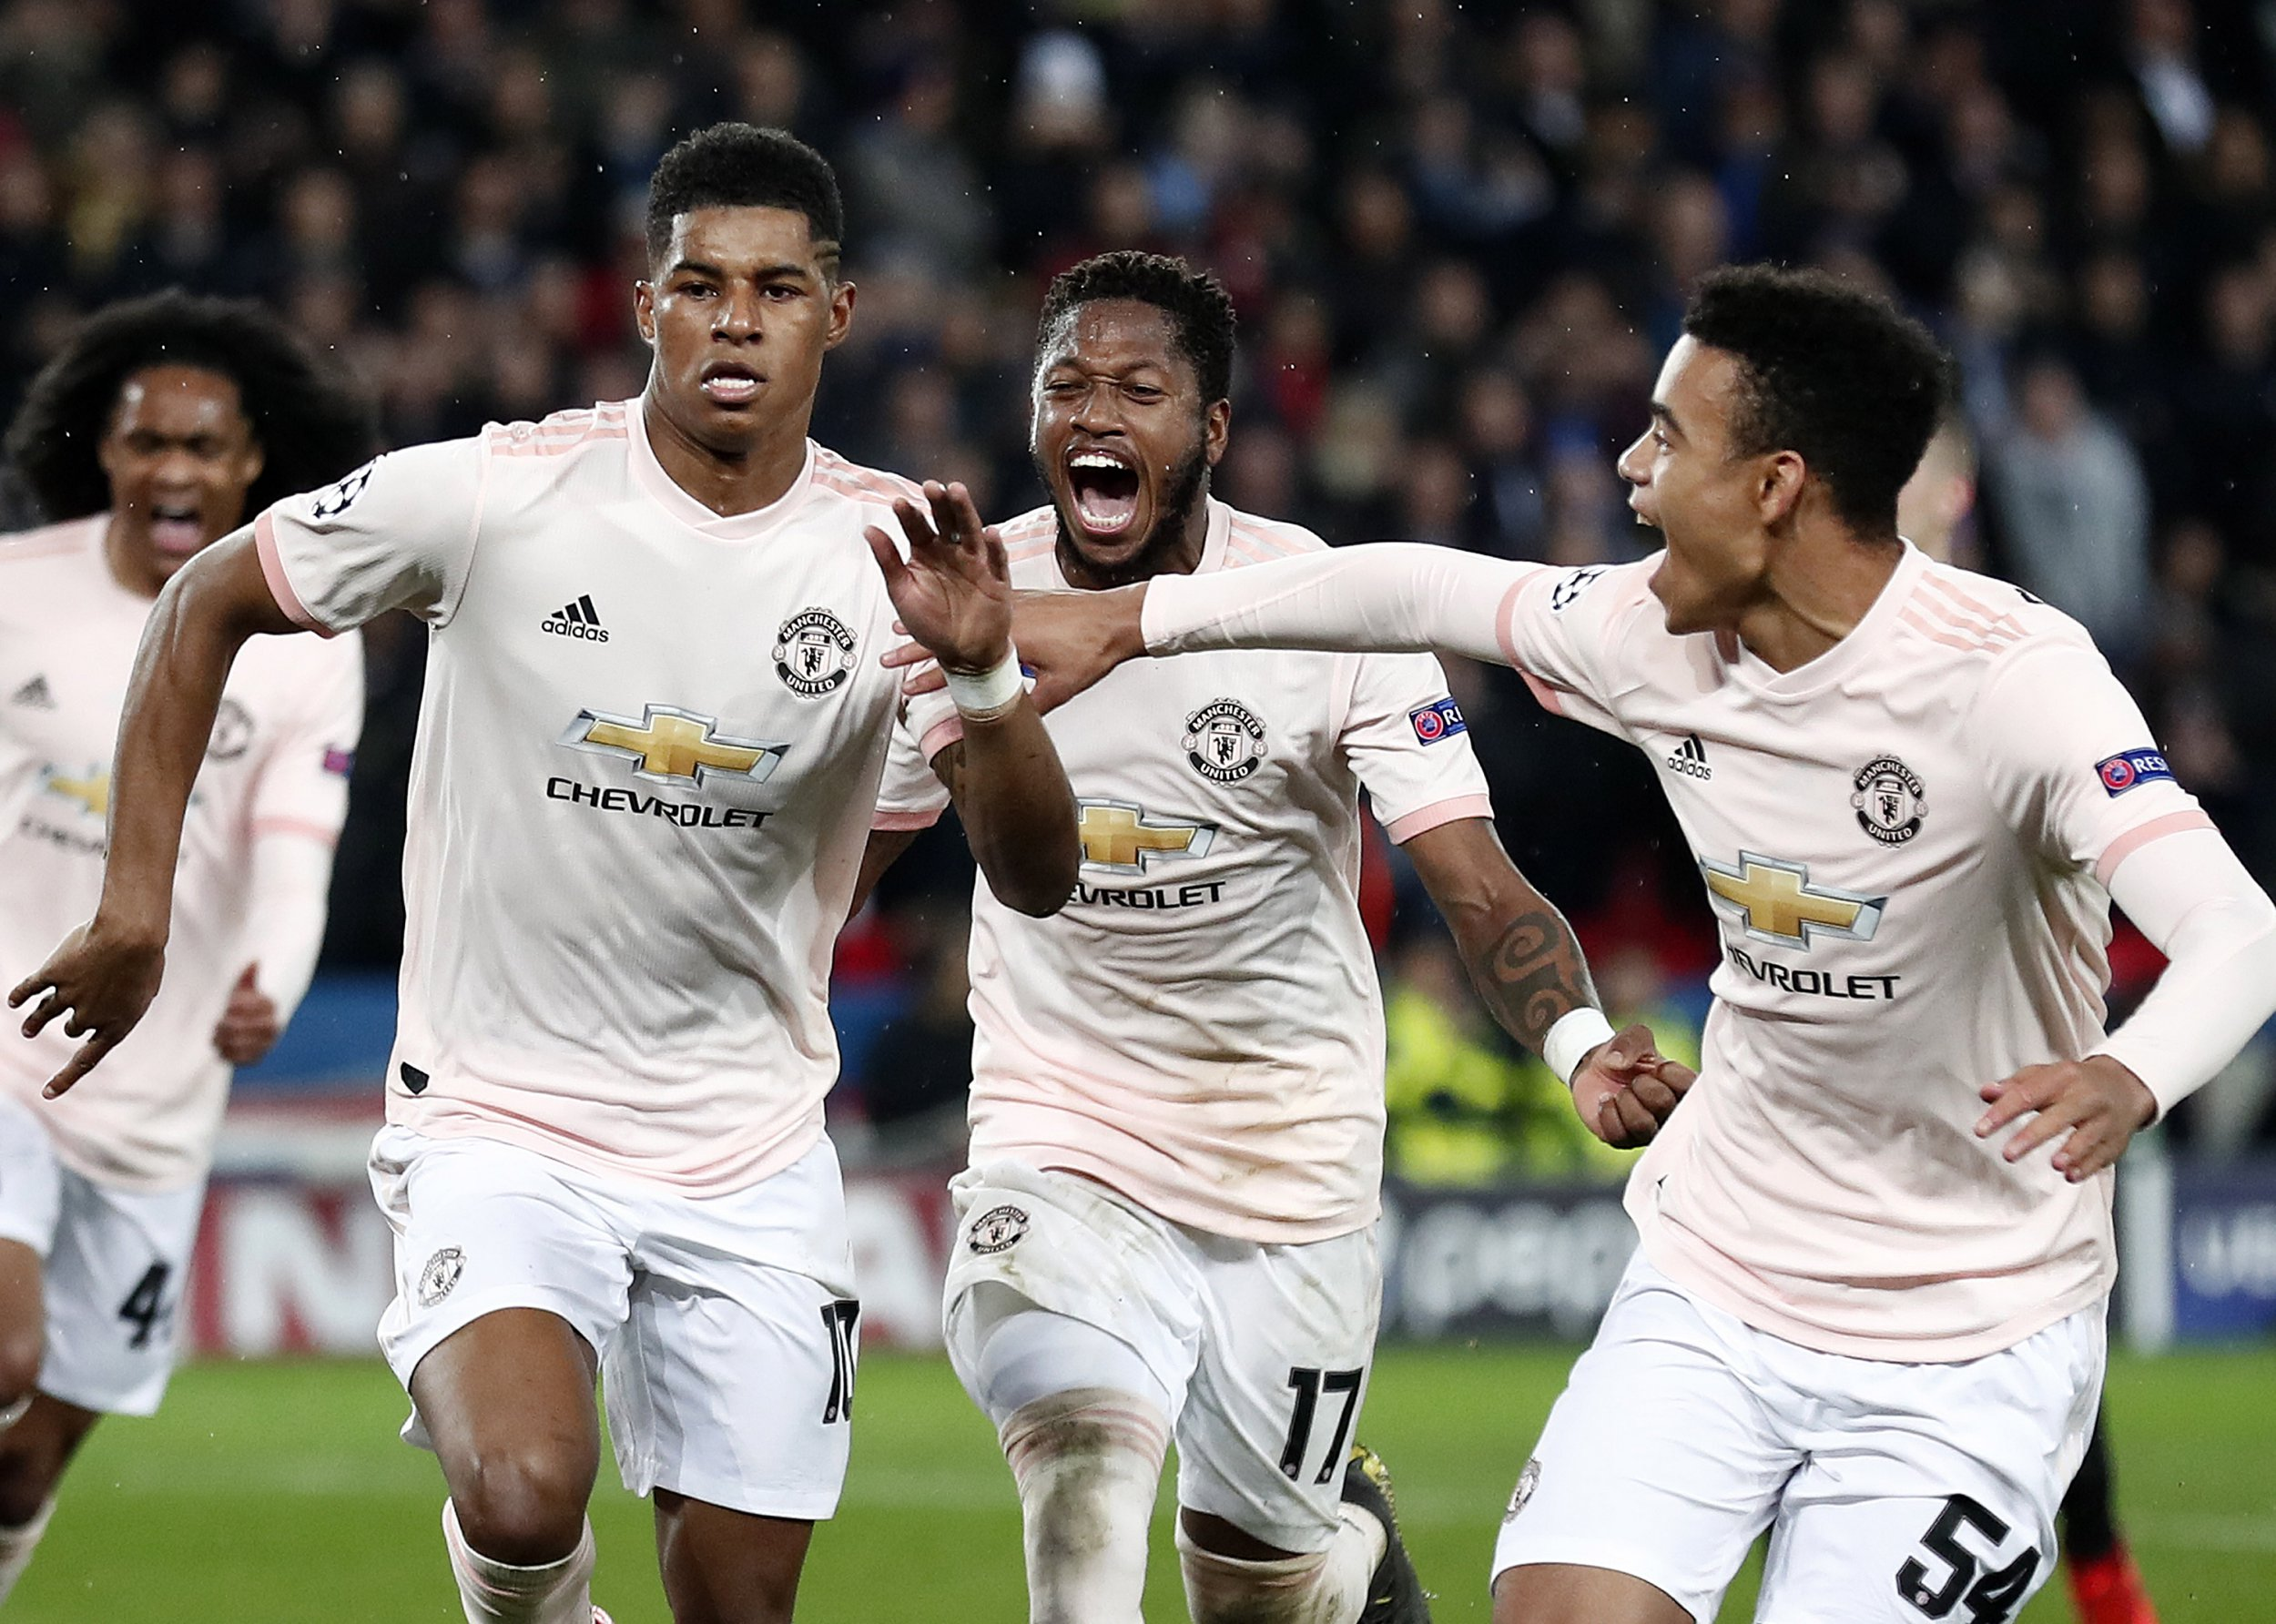 PSG fans wants Manchester United thrown out of Champions League for breaking minor kit rule